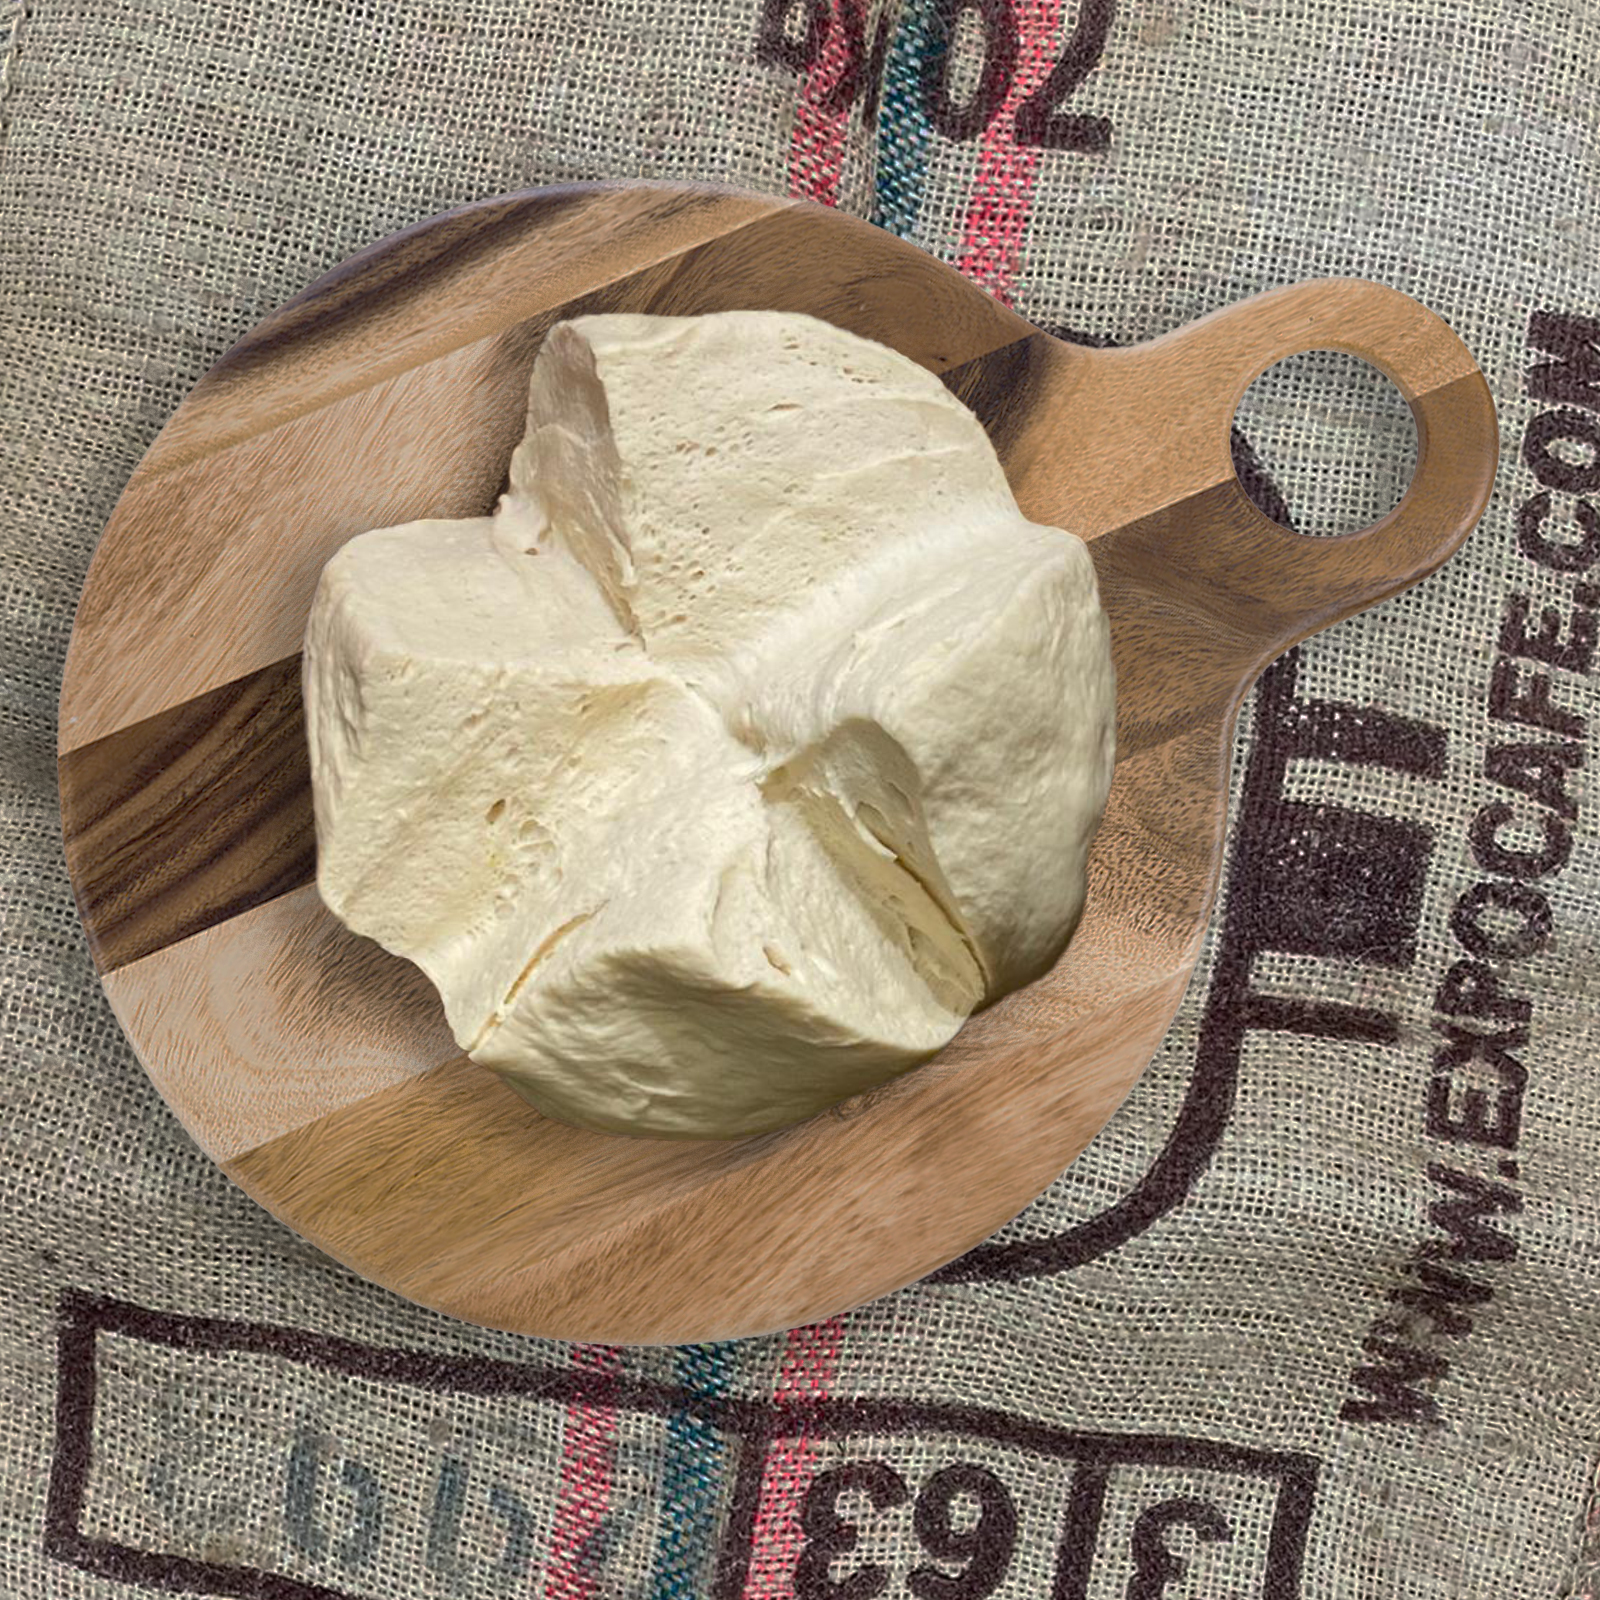 Make Your Own Pizza - Pizza Dough